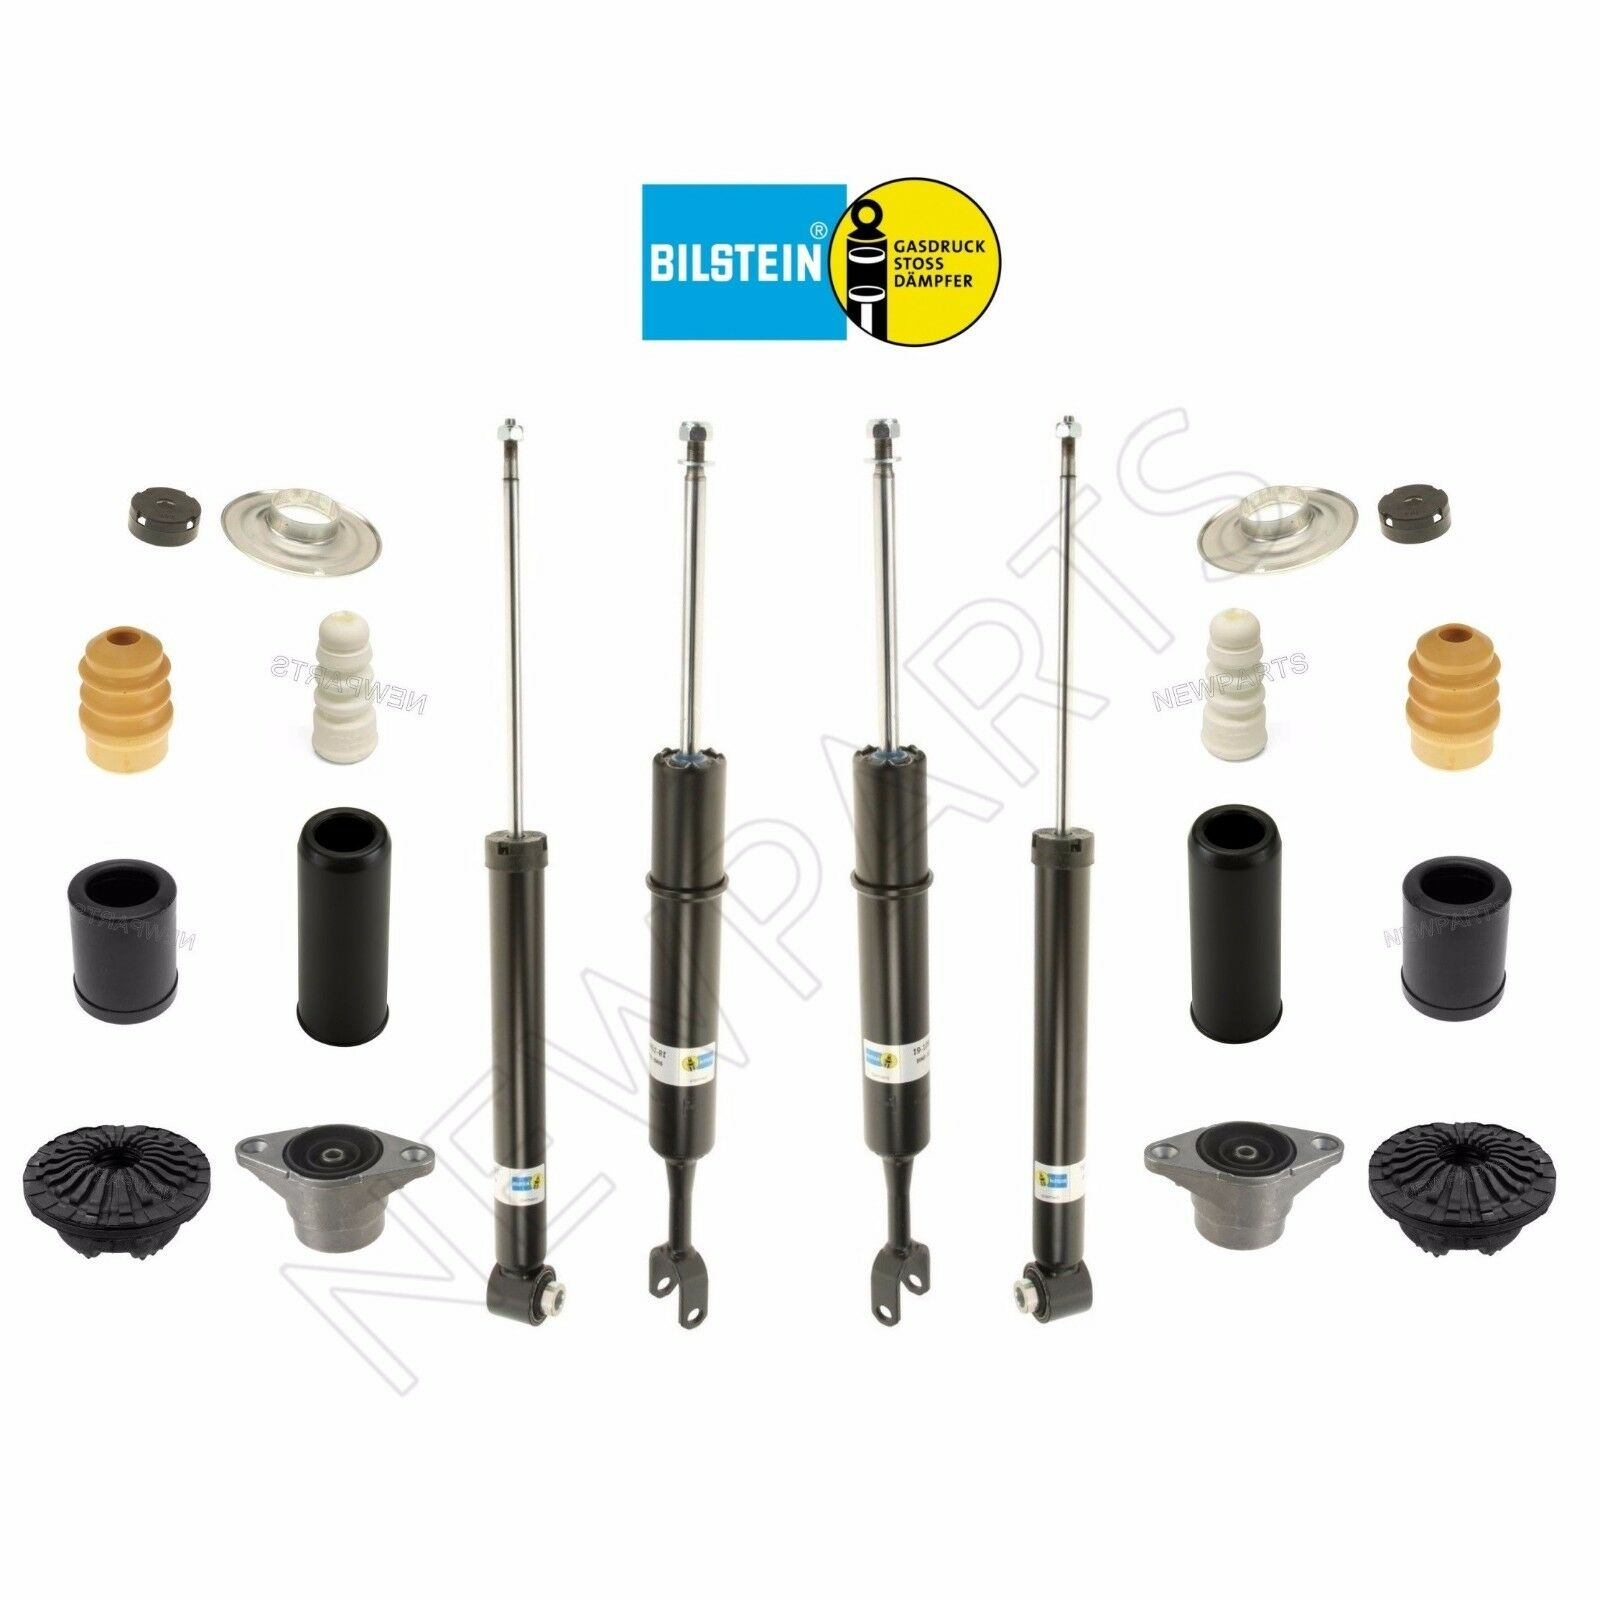 New Bilstein TC Shock Absorber Front 19109497 Audi A4 A4 Quattro